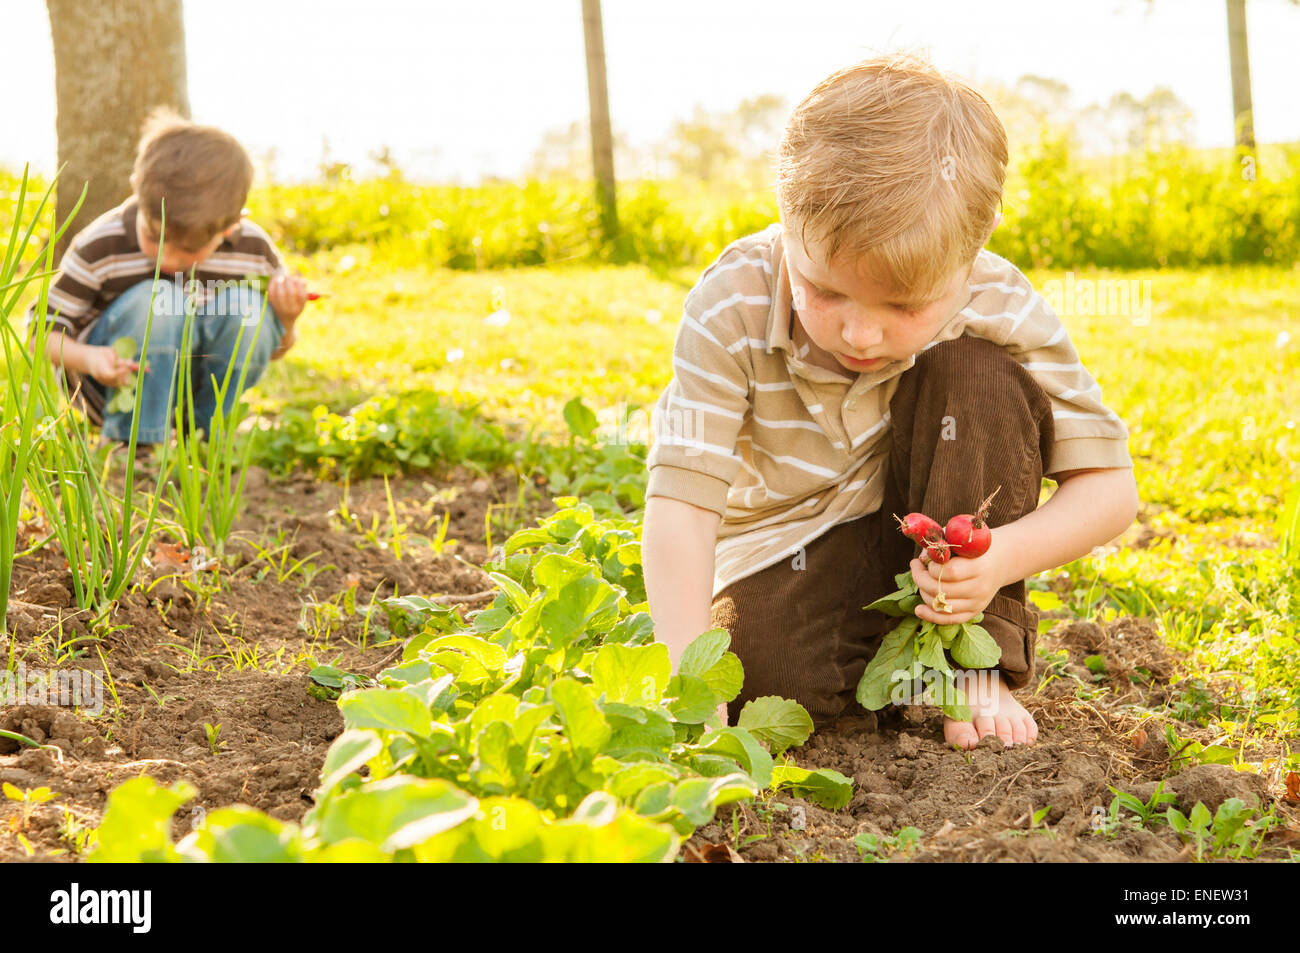 Two boys working in Spring garden - Stock Image